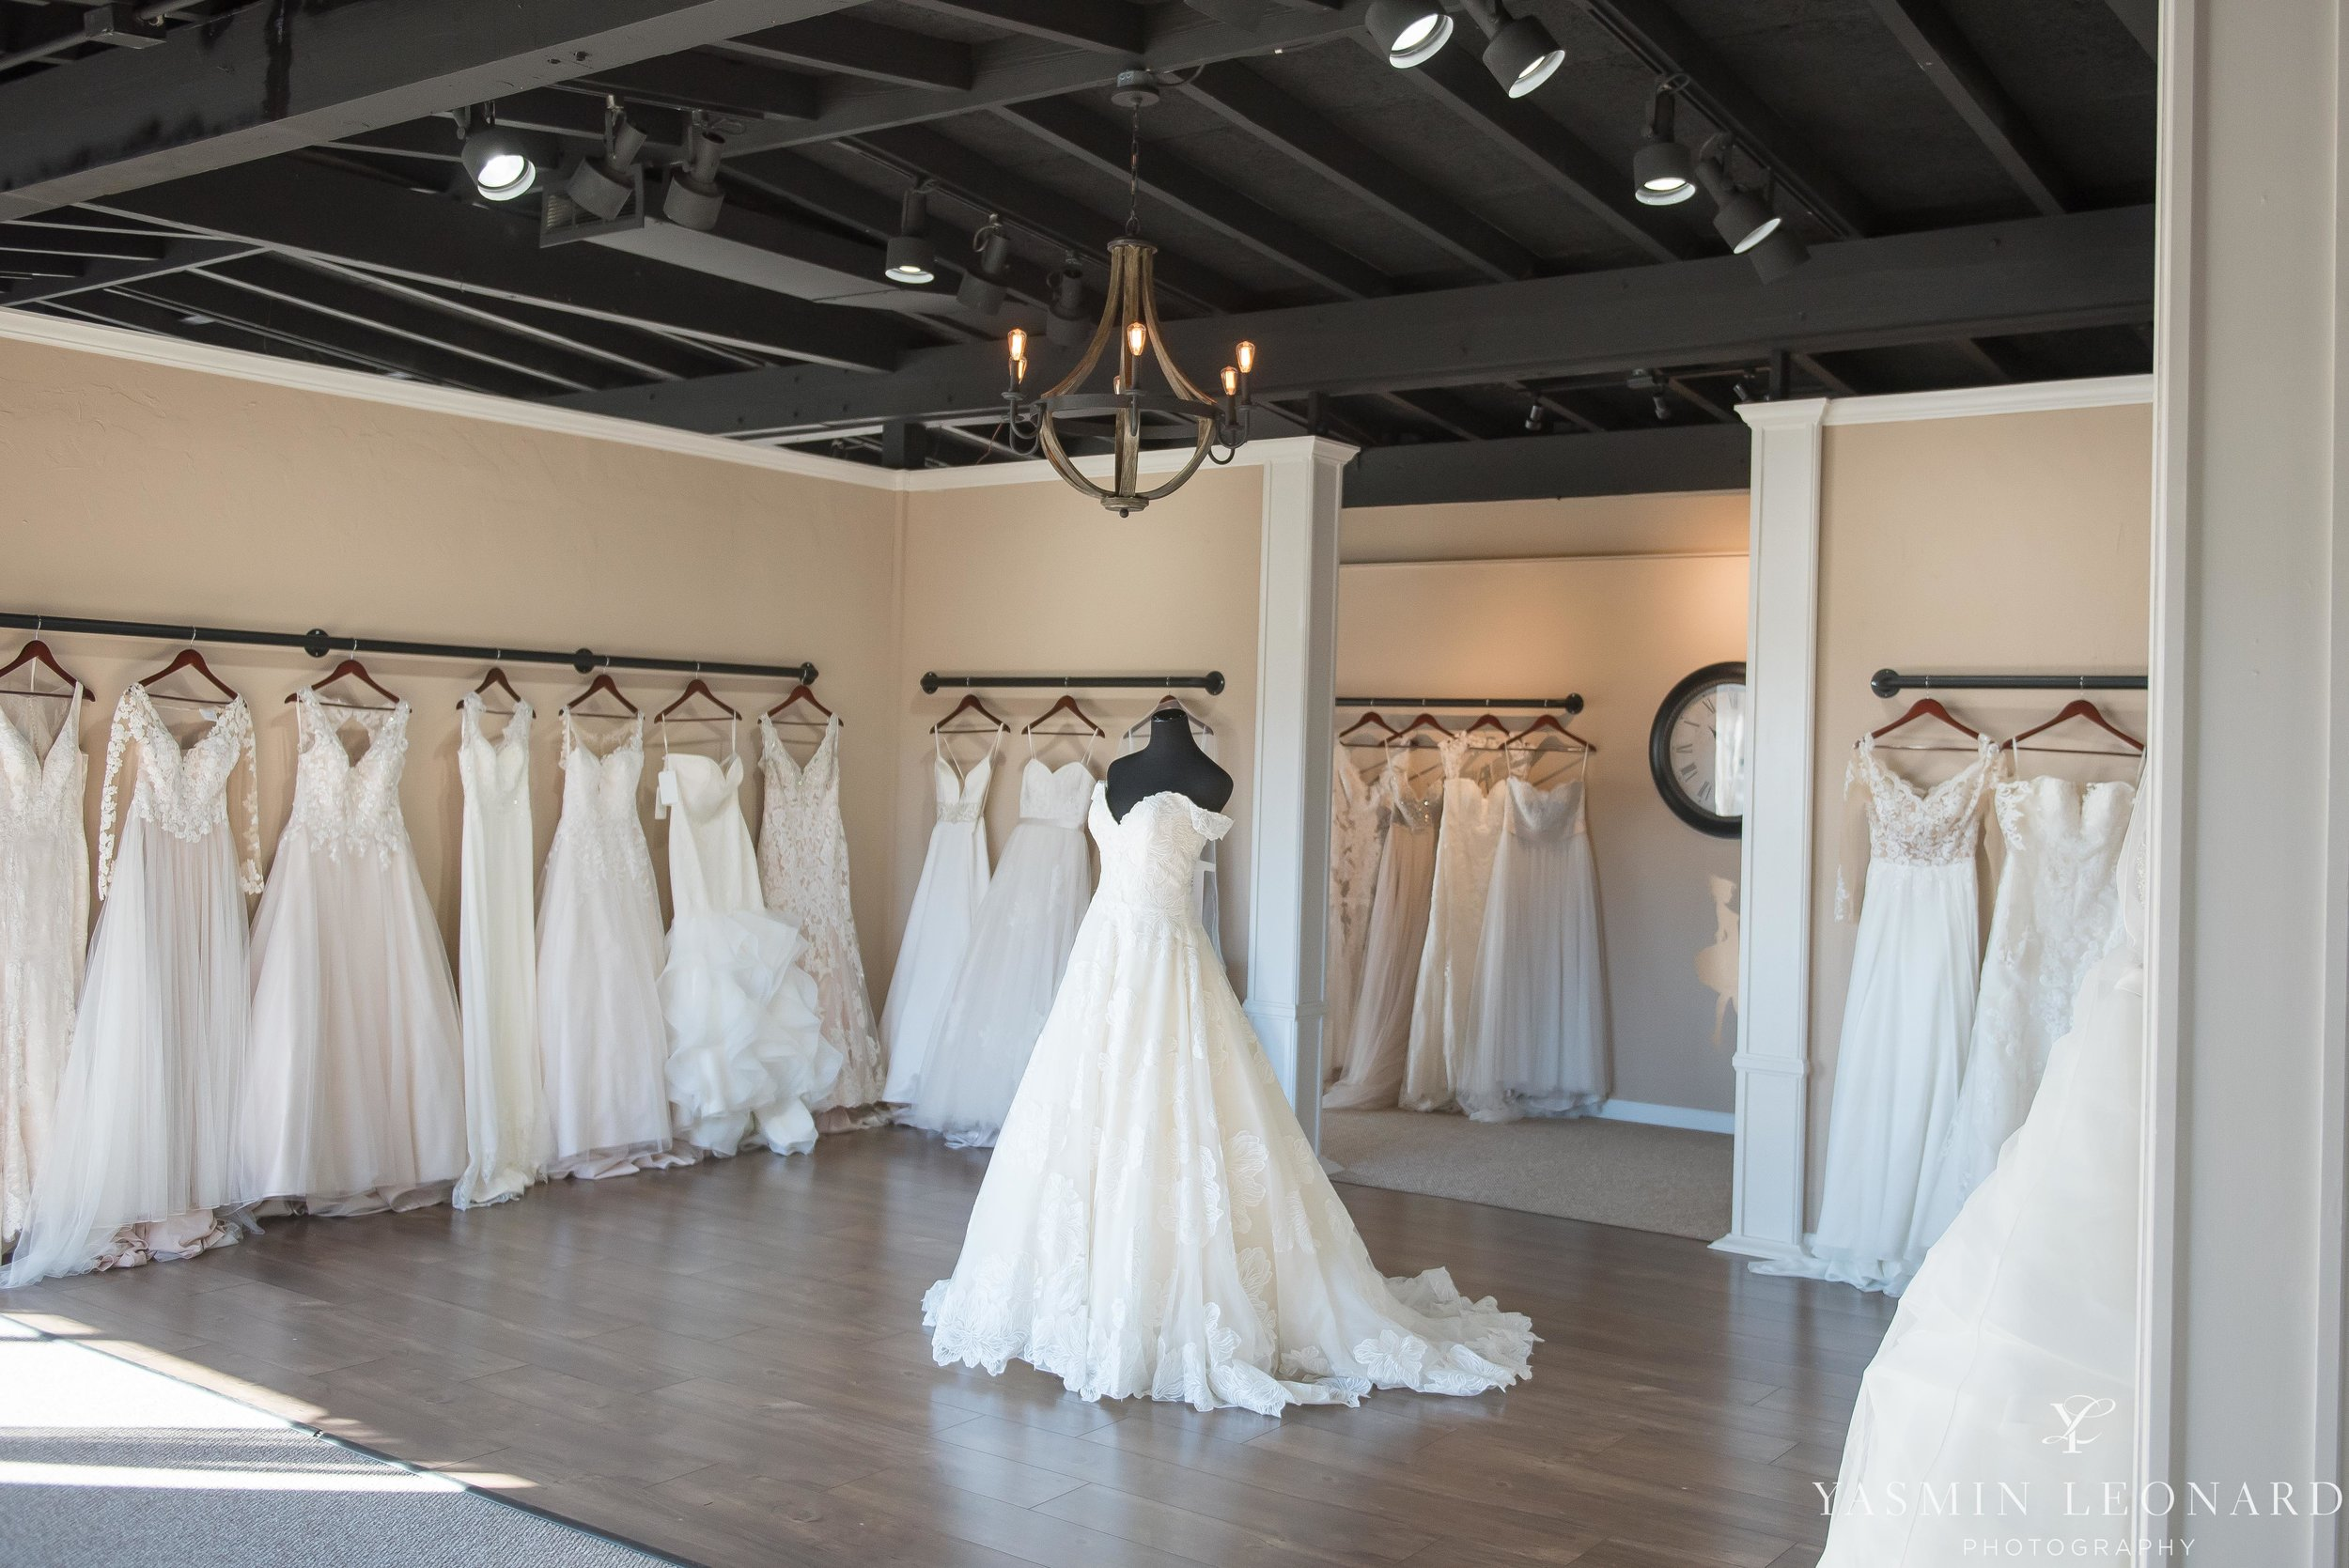 Dashing Dames Bridal and Boutique - High Point Bridal Shop - Bridal Store in High Point - Yasmin Leonard Photography-5.jpg